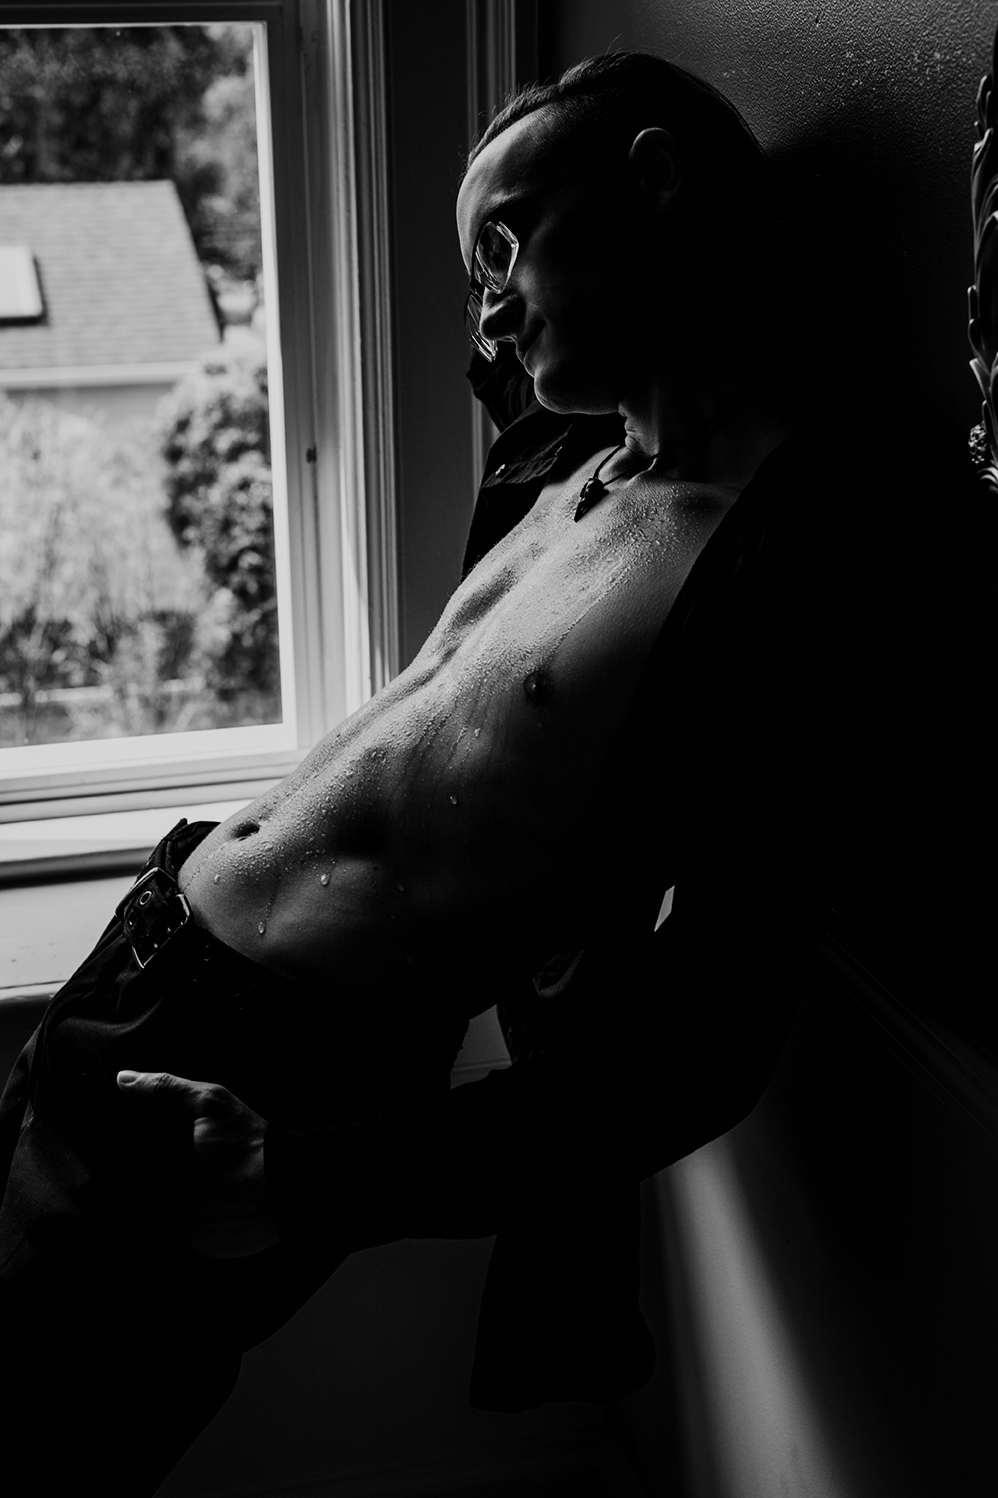 Victoria-Bc-Boudoir-Moss-Photography-73bw.jpg